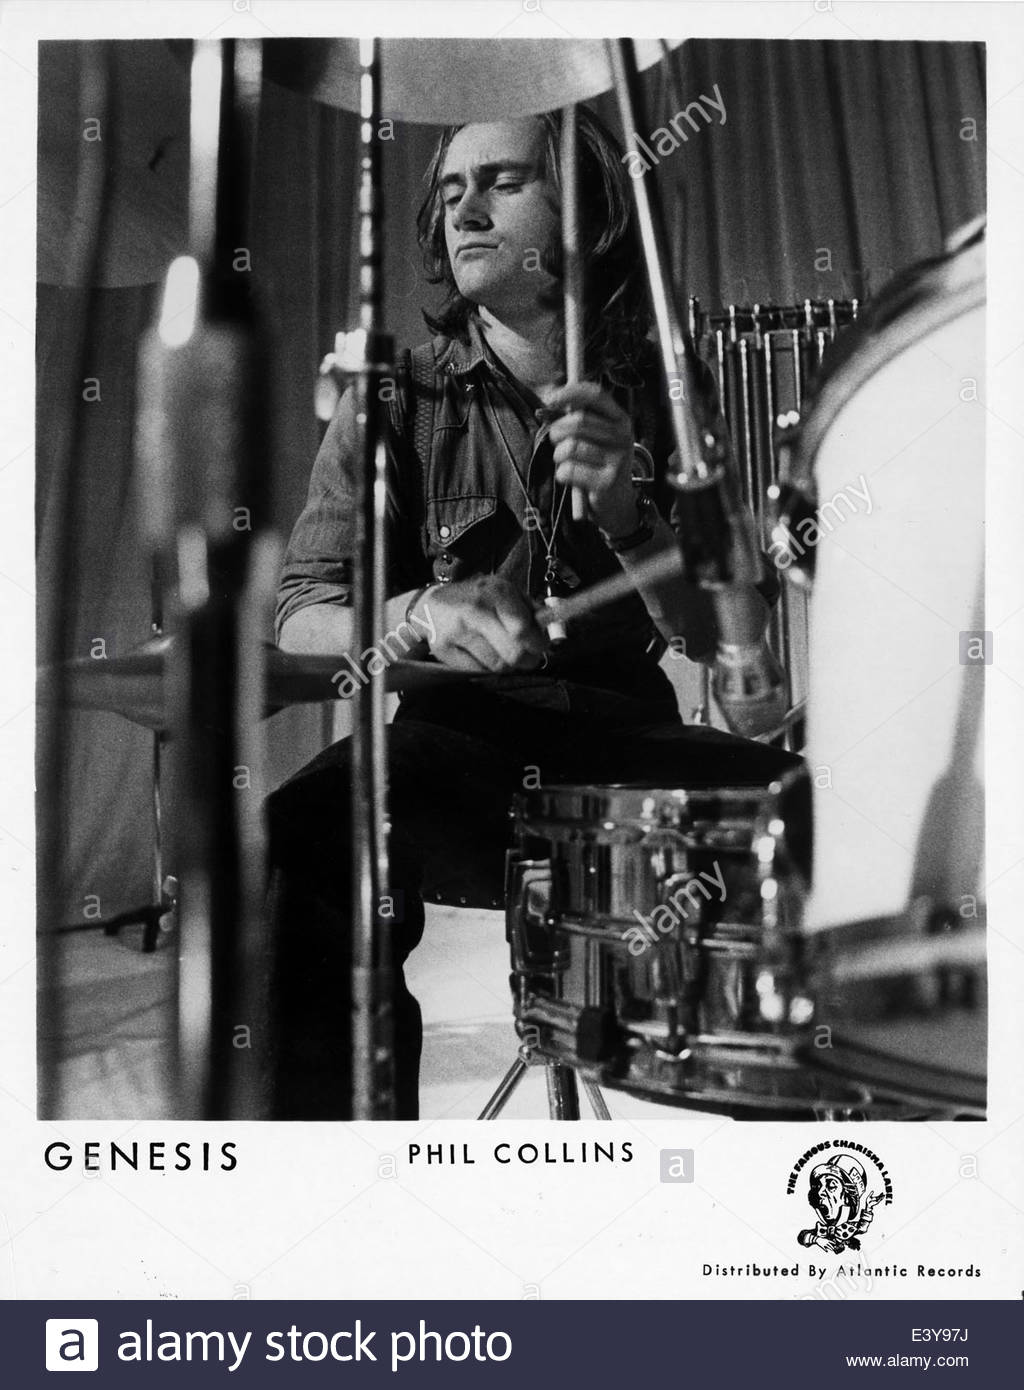 Phil Collins of Genesis, circa 1970s - Stock Image